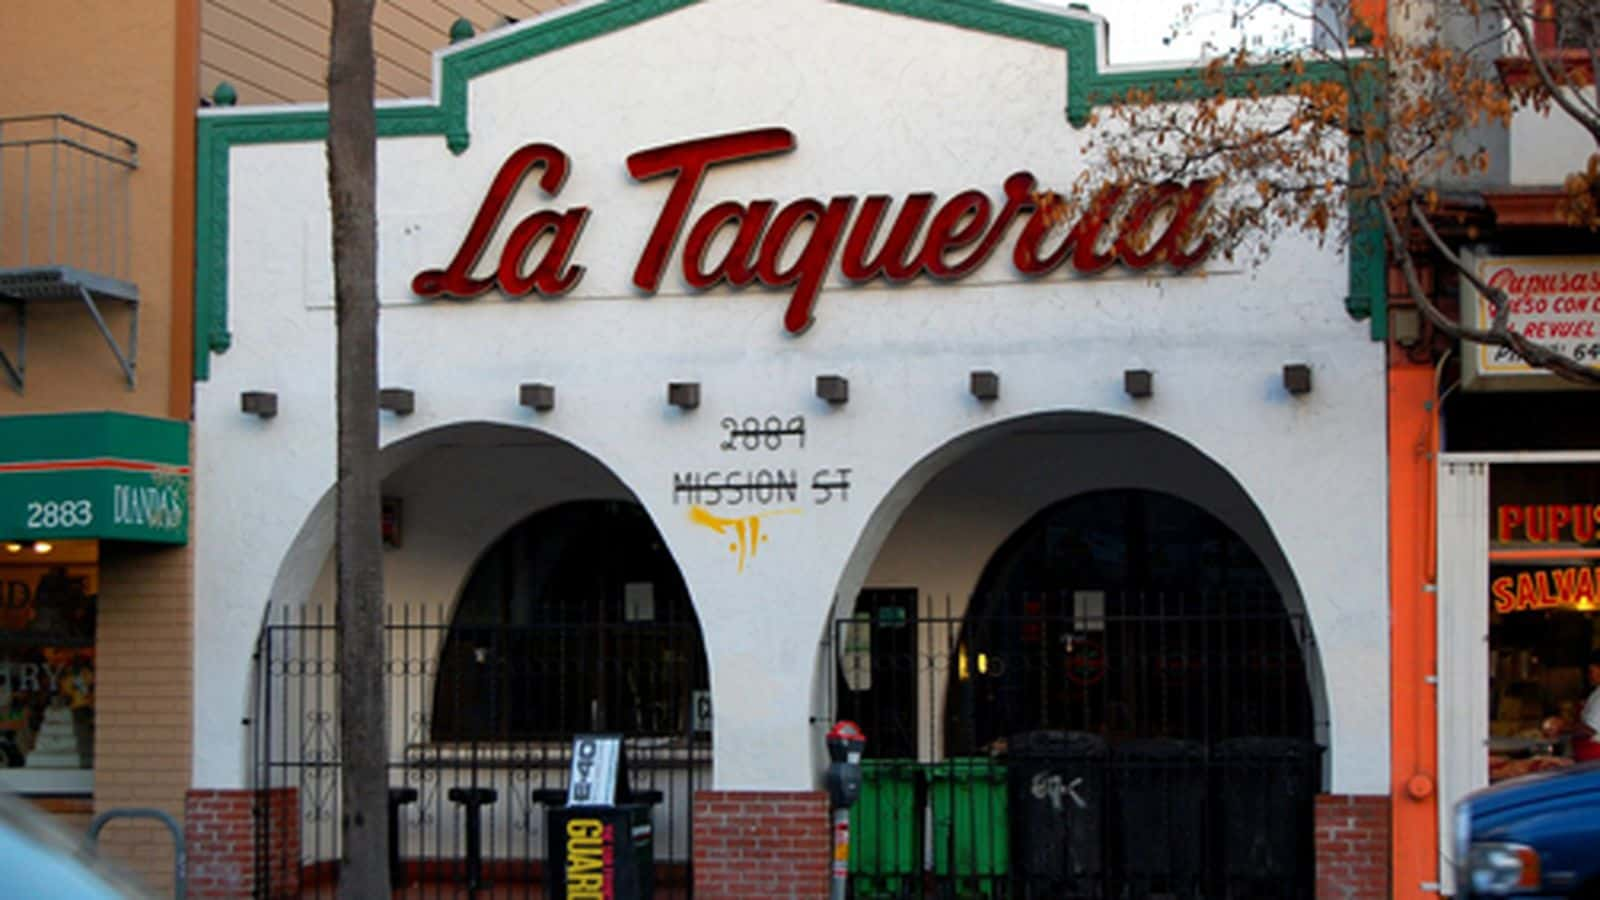 La Taqueria restaurant located in SAN FRANCISCO, CA